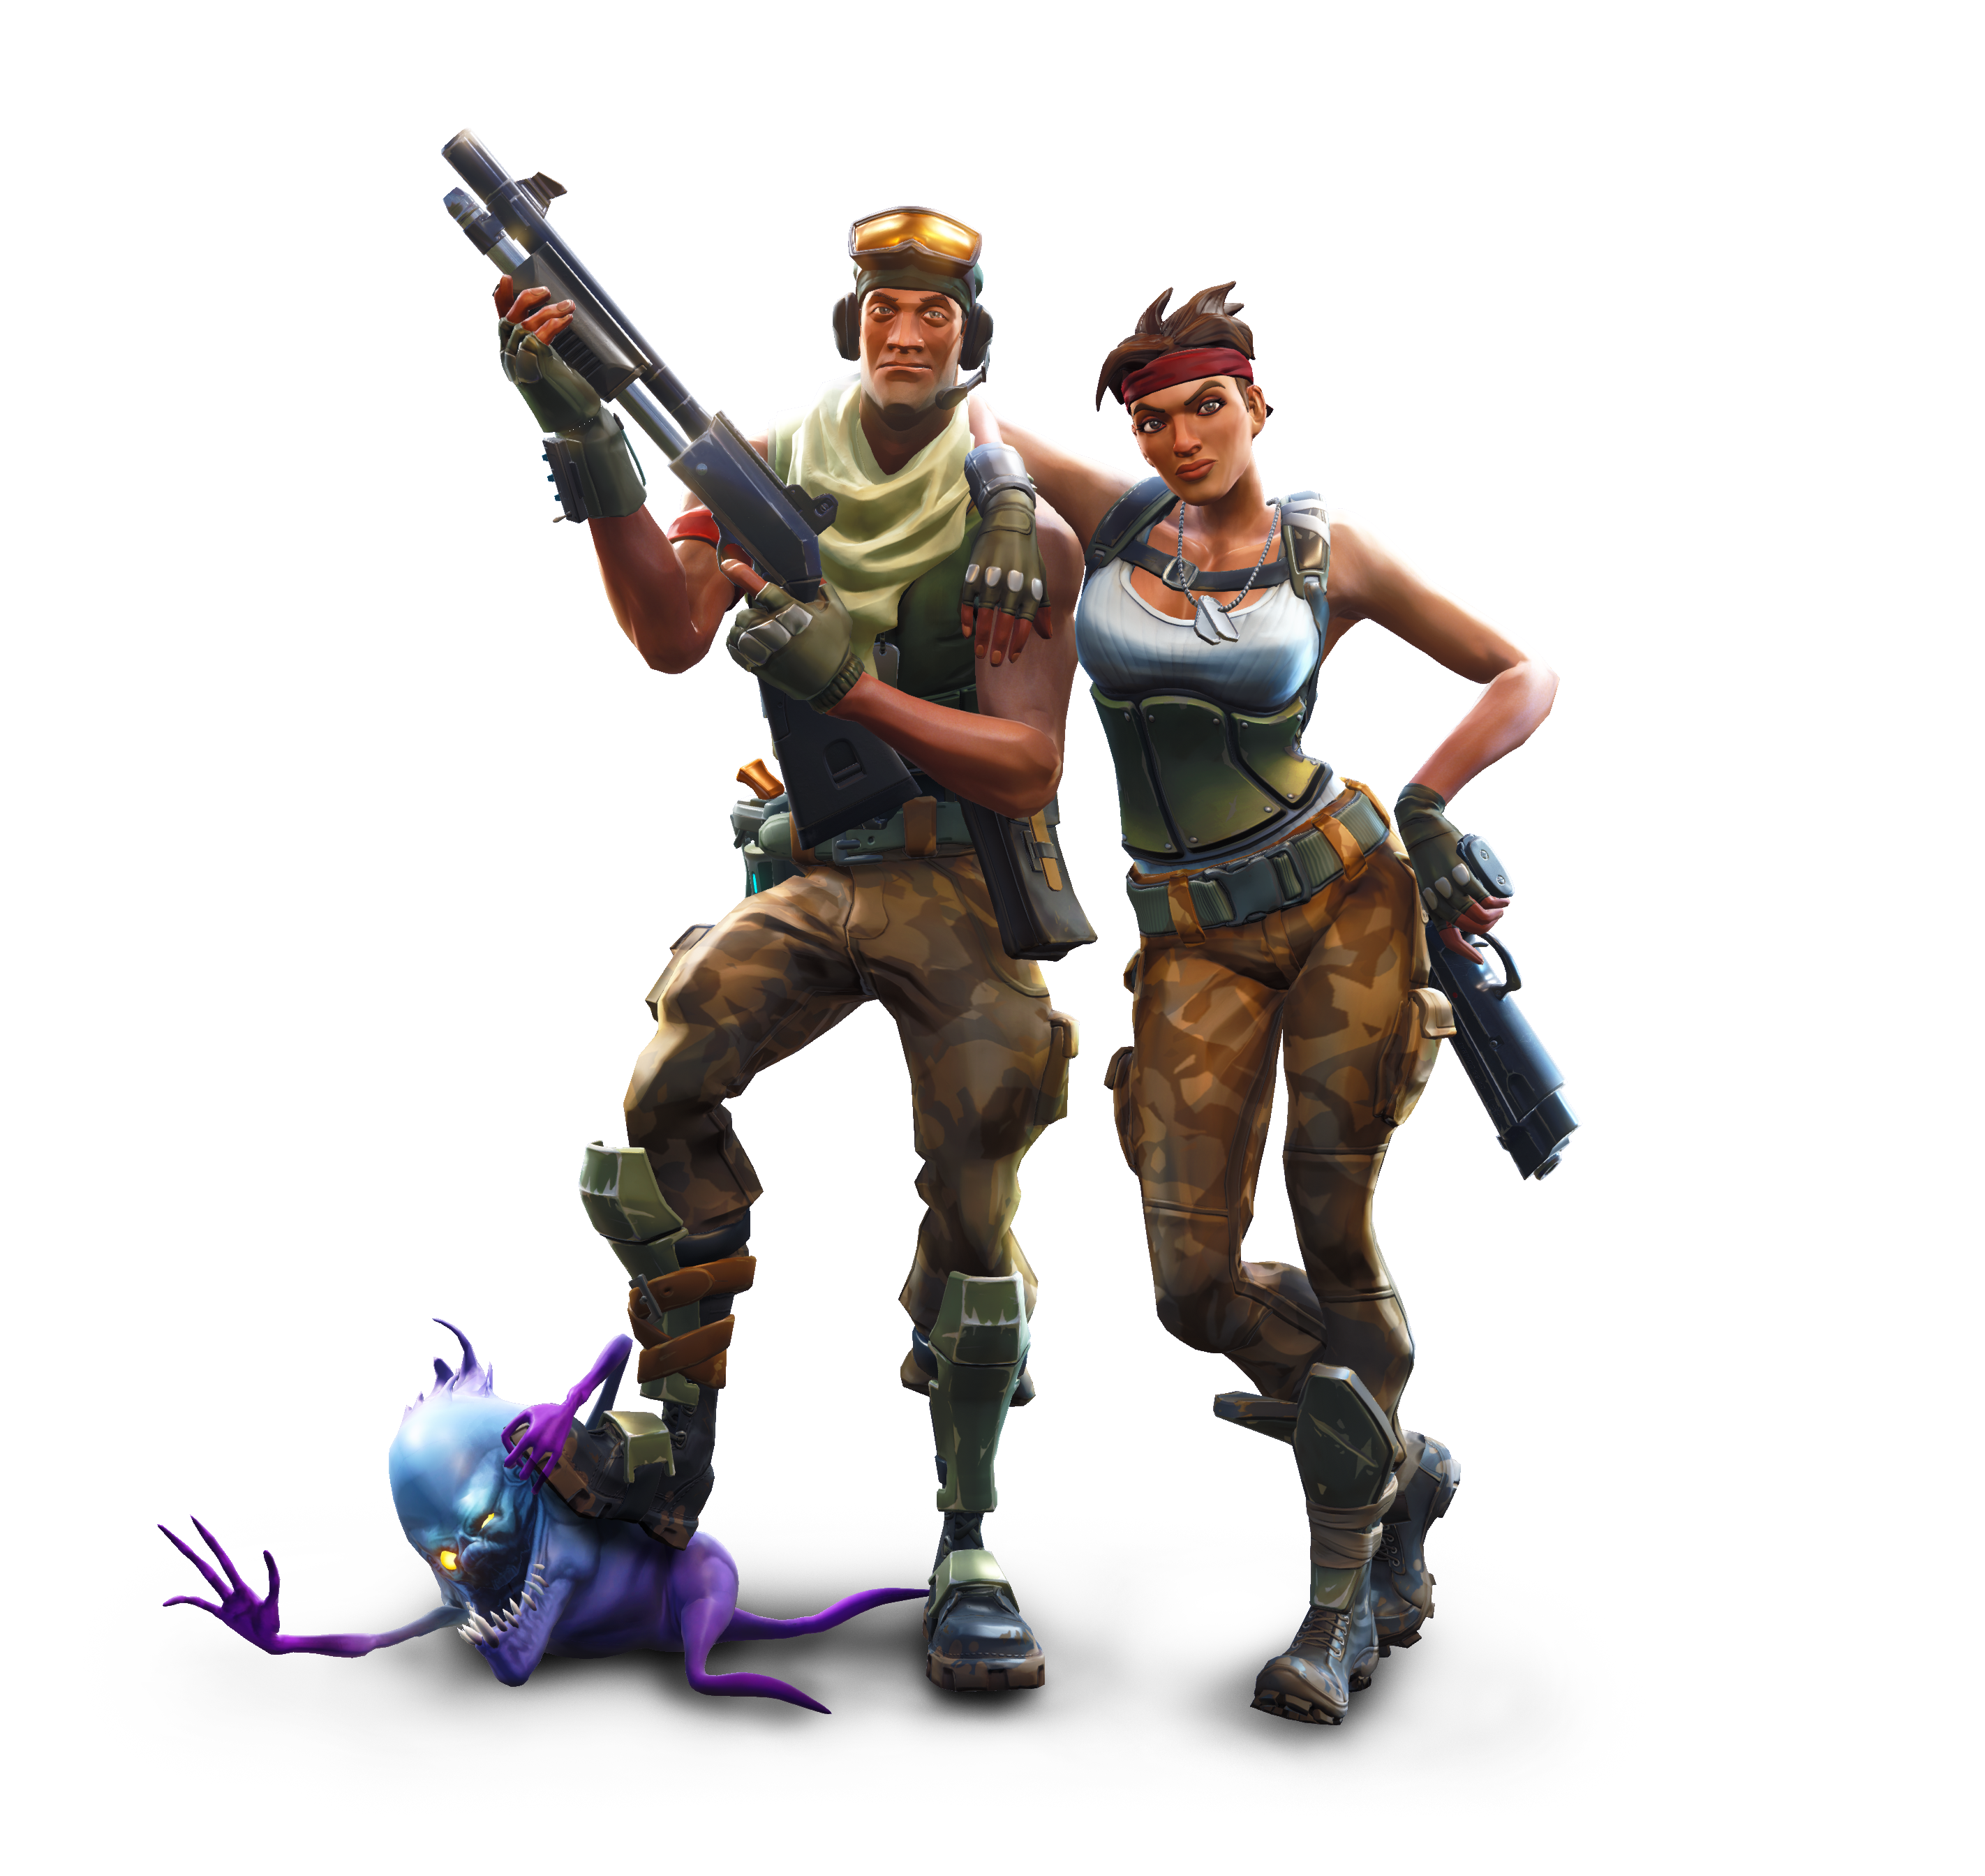 Fortnite background png. Battle royale champs image